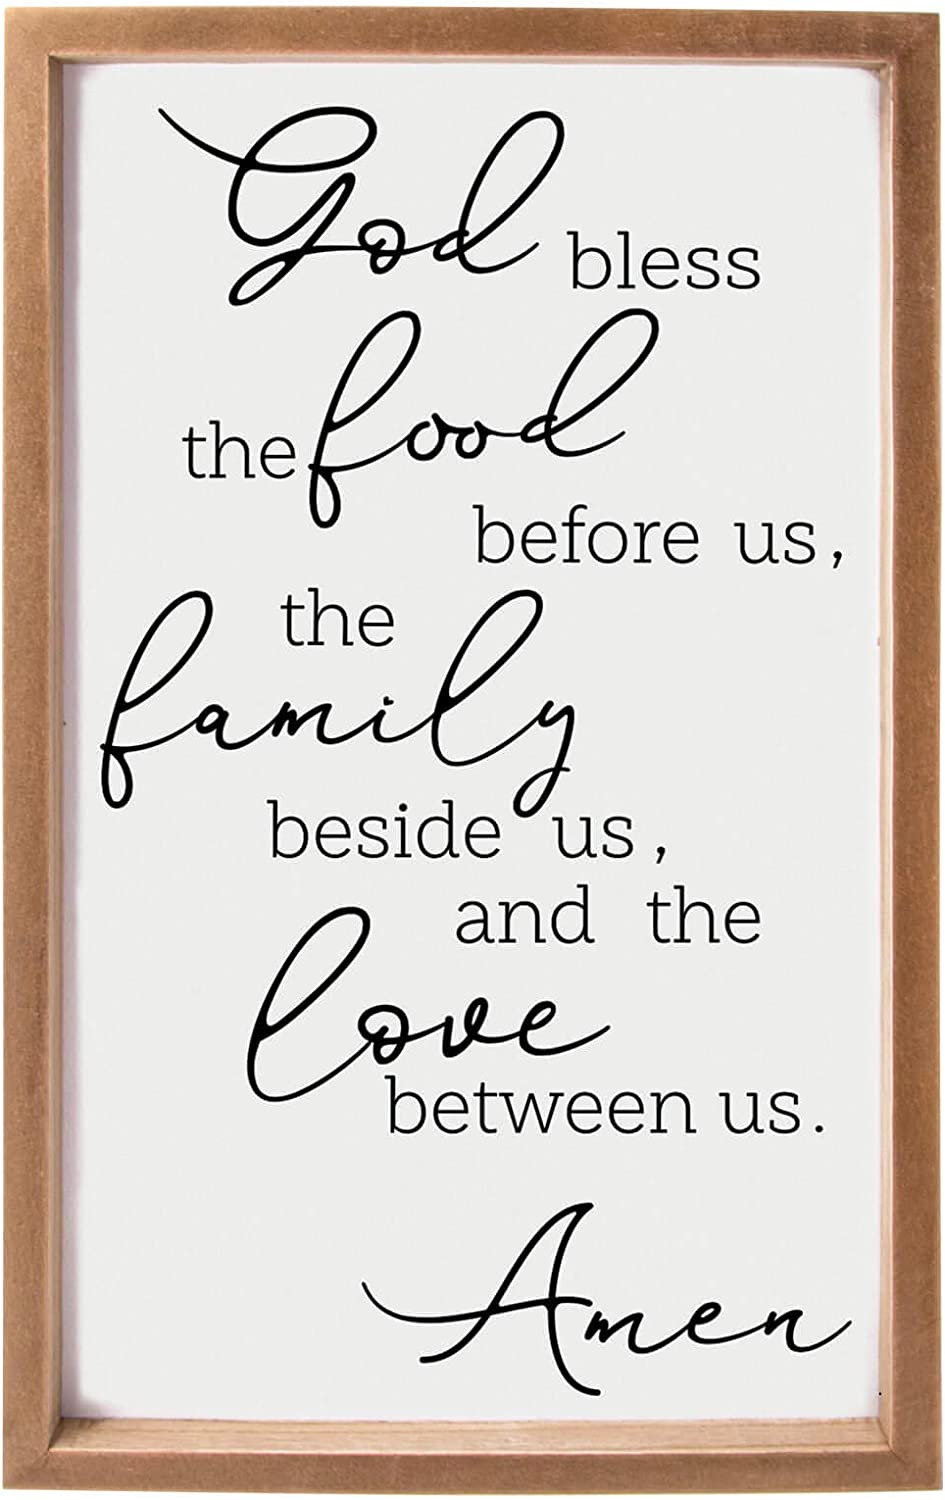 VILIGHT Framed Farmhouse Family Wall Decor for Dining Room and Kitchen - Rustic Wood Sign with Quotes Bless The Food Before Us - Vertical 16x9.5 Inches